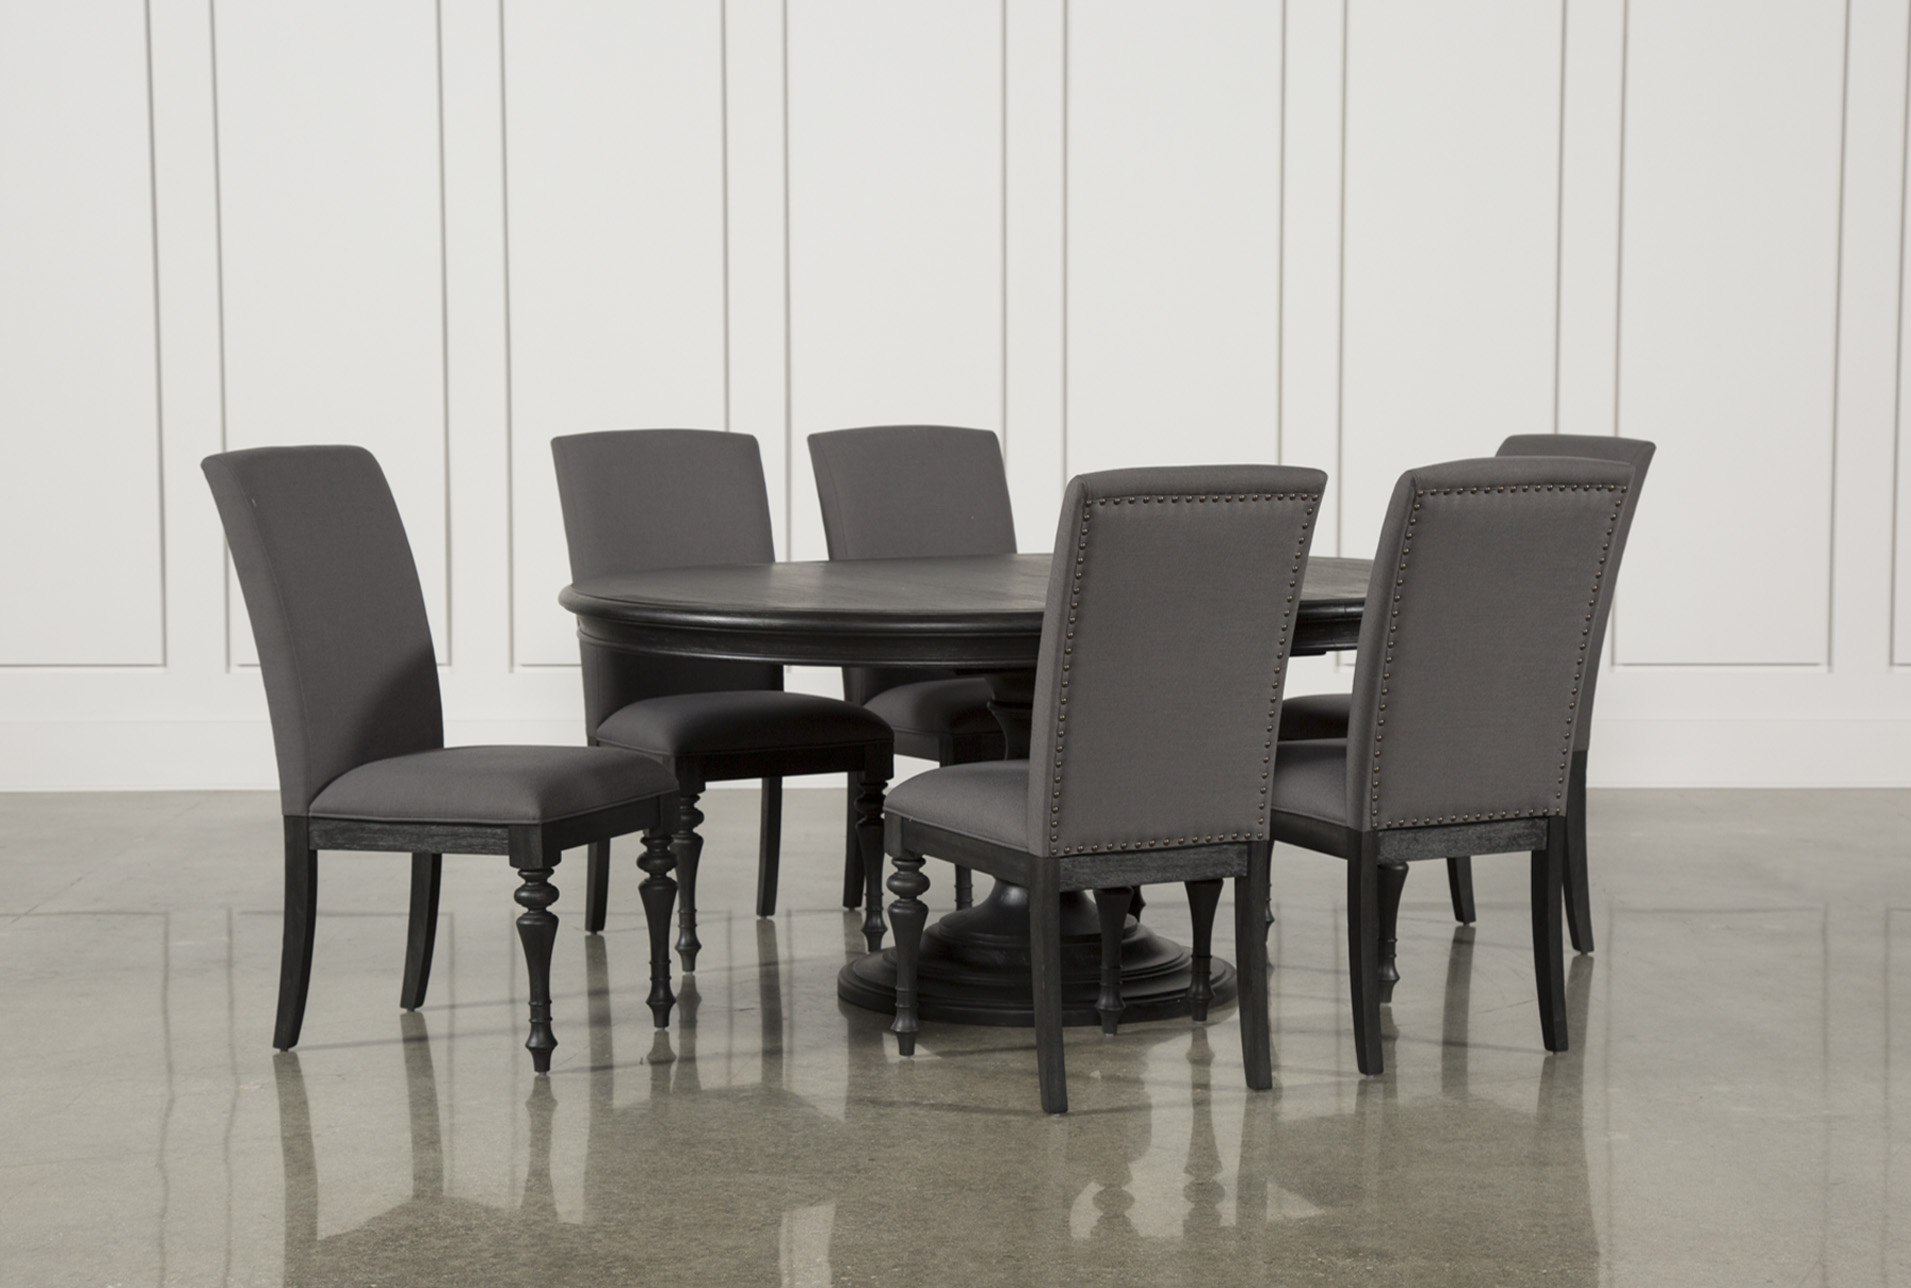 Awesome Caira Black 7 Piece Dining Set W/Upholstered Side Chairs (Qty: 1) Has Been  Successfully Added To Your Cart.